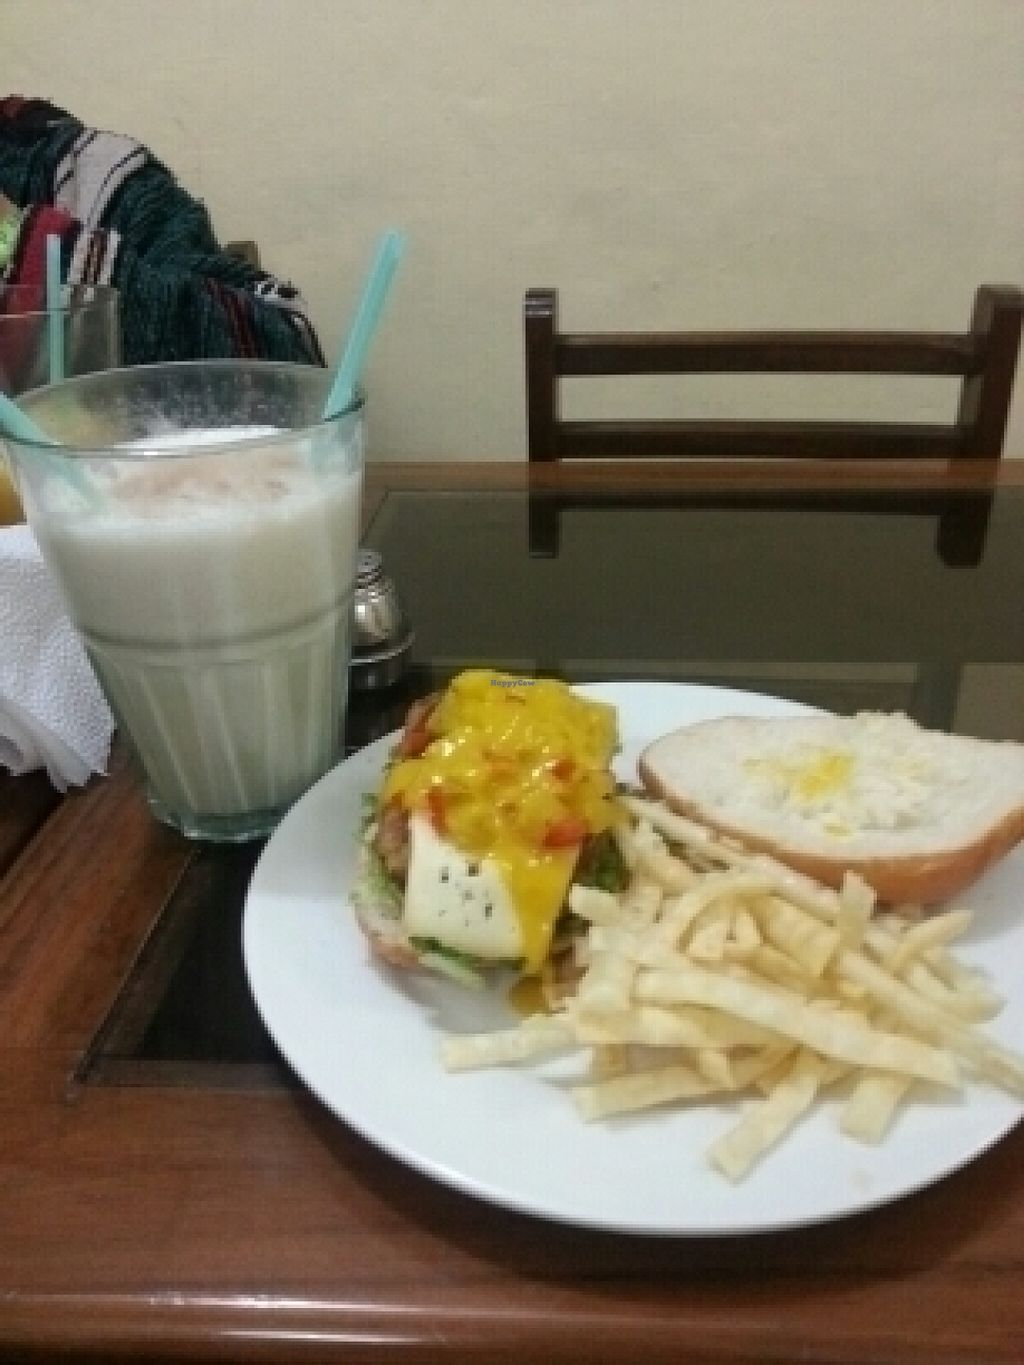 "Photo of Prasada  by <a href=""/members/profile/mrrfrost"">mrrfrost</a> <br/>Hawaiian burger and Chai tea lassi <br/> July 14, 2016  - <a href='/contact/abuse/image/19318/159687'>Report</a>"